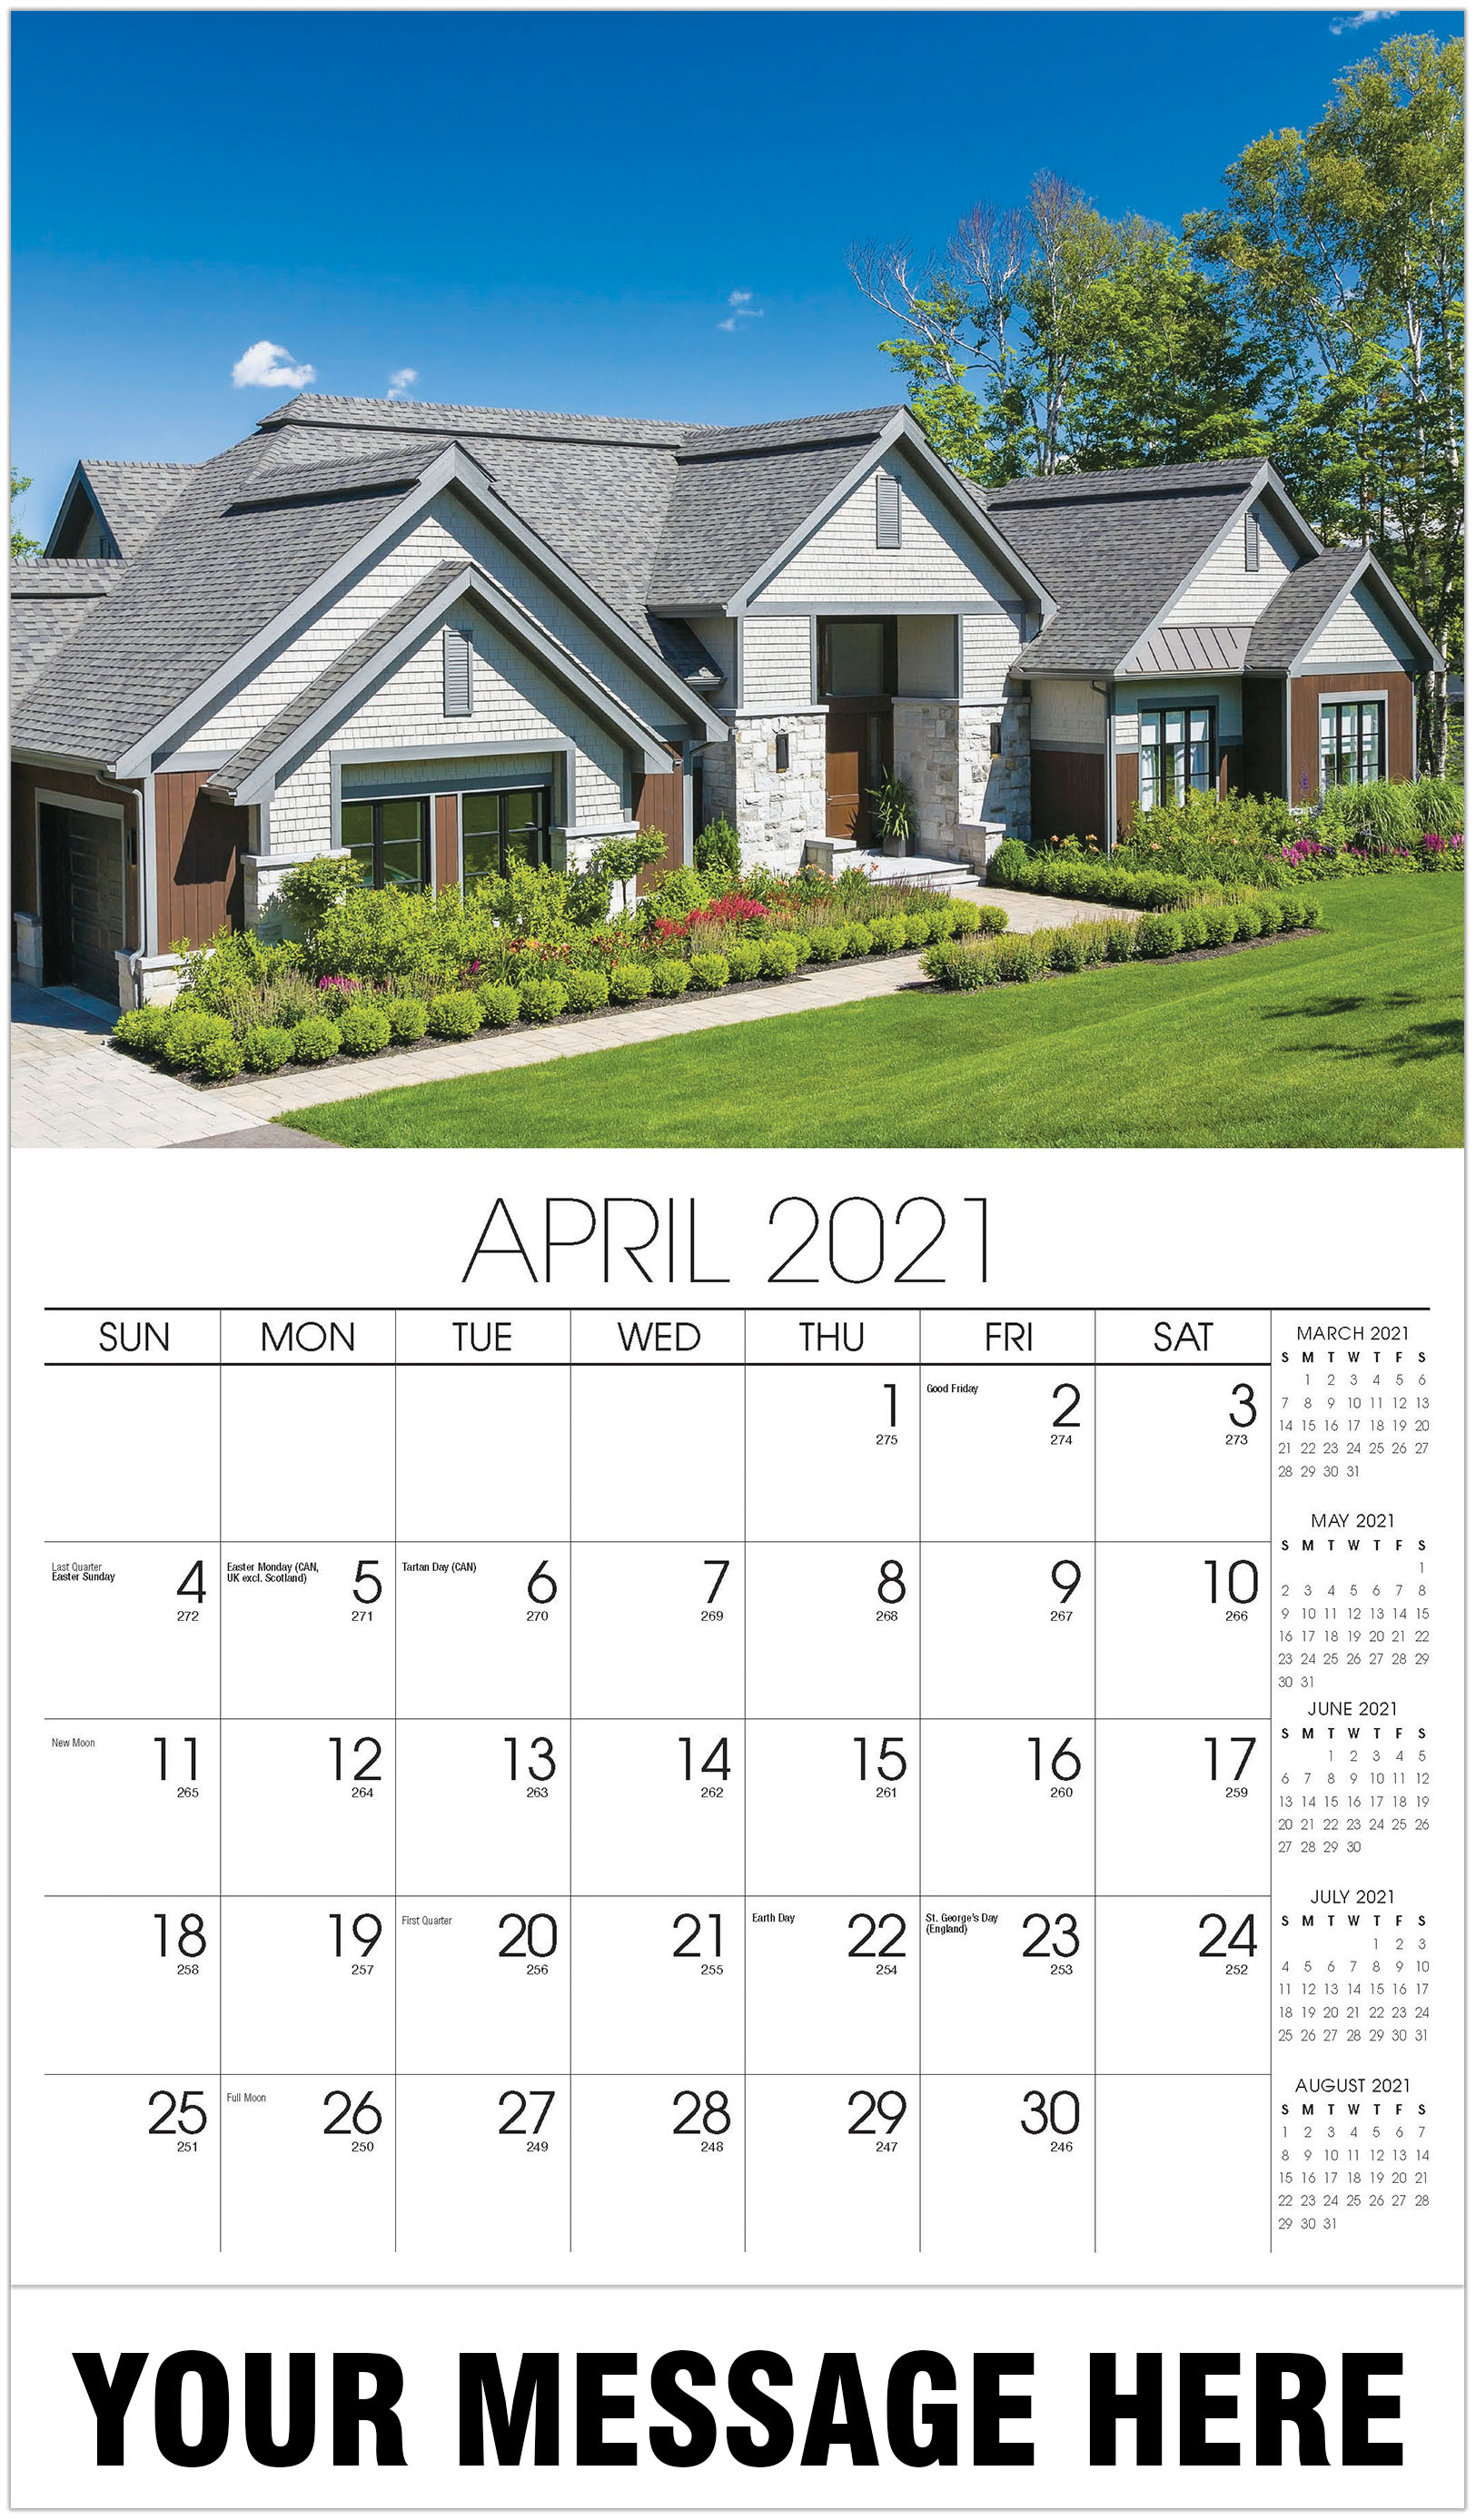 Luxury Homes Calendar - April - Homes 2021 Promotional Calendar